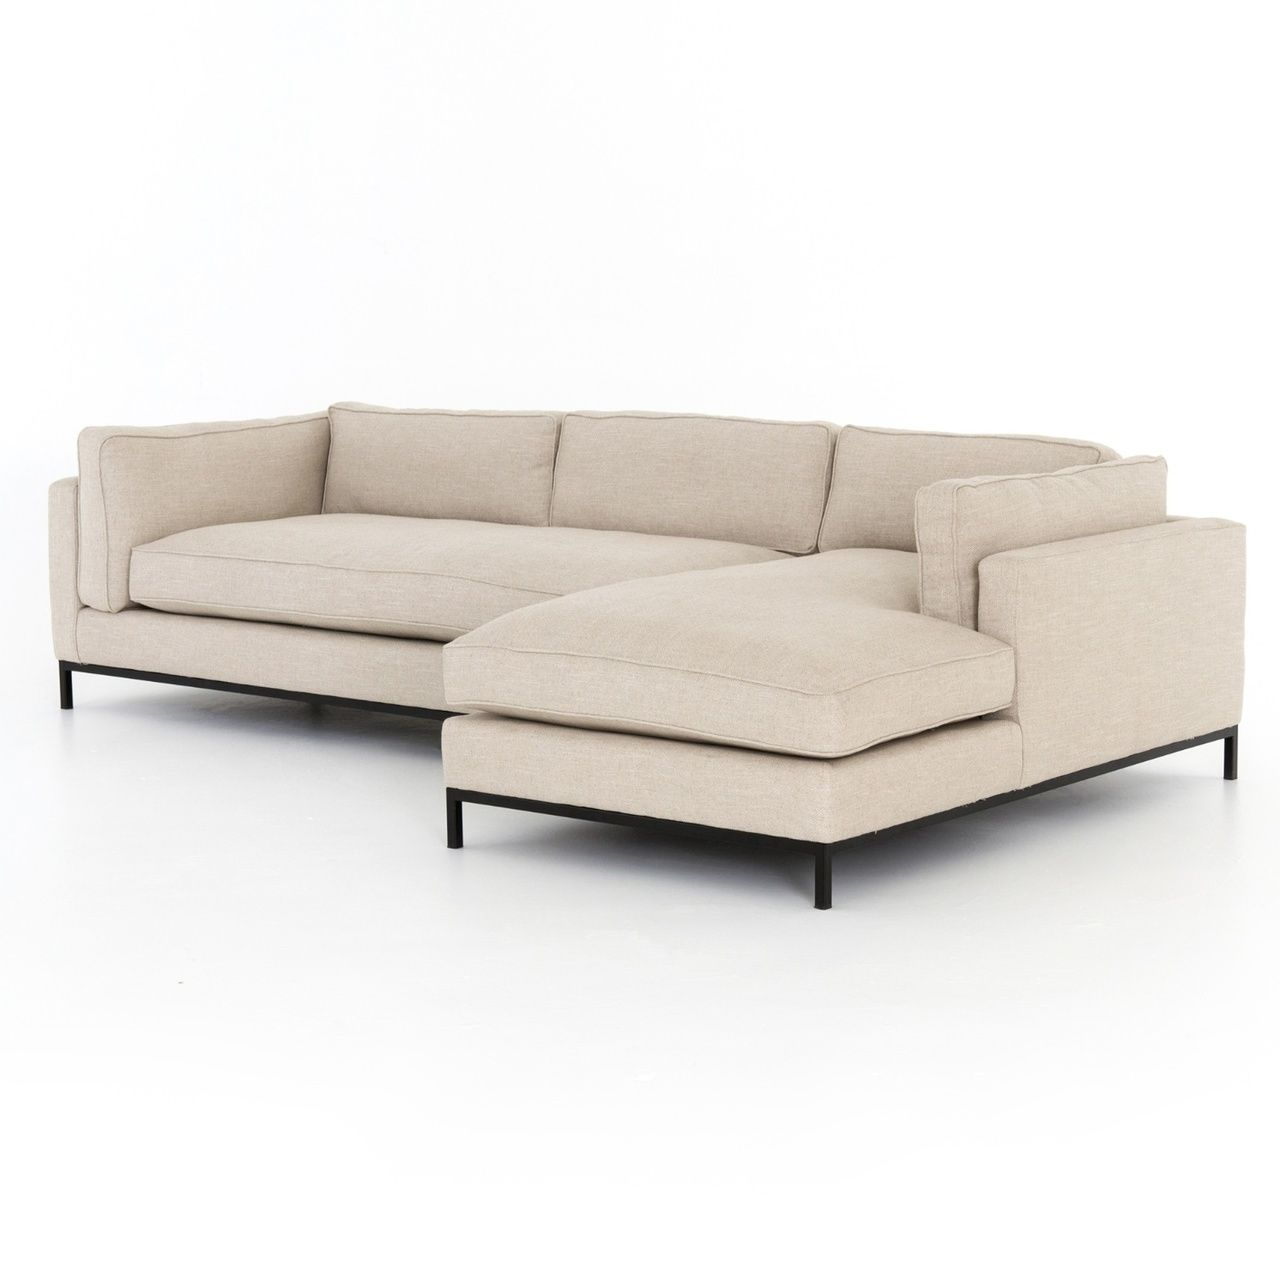 Grammercy Modern Sand Fabric 2 Piece Sectional Sofa Sectional